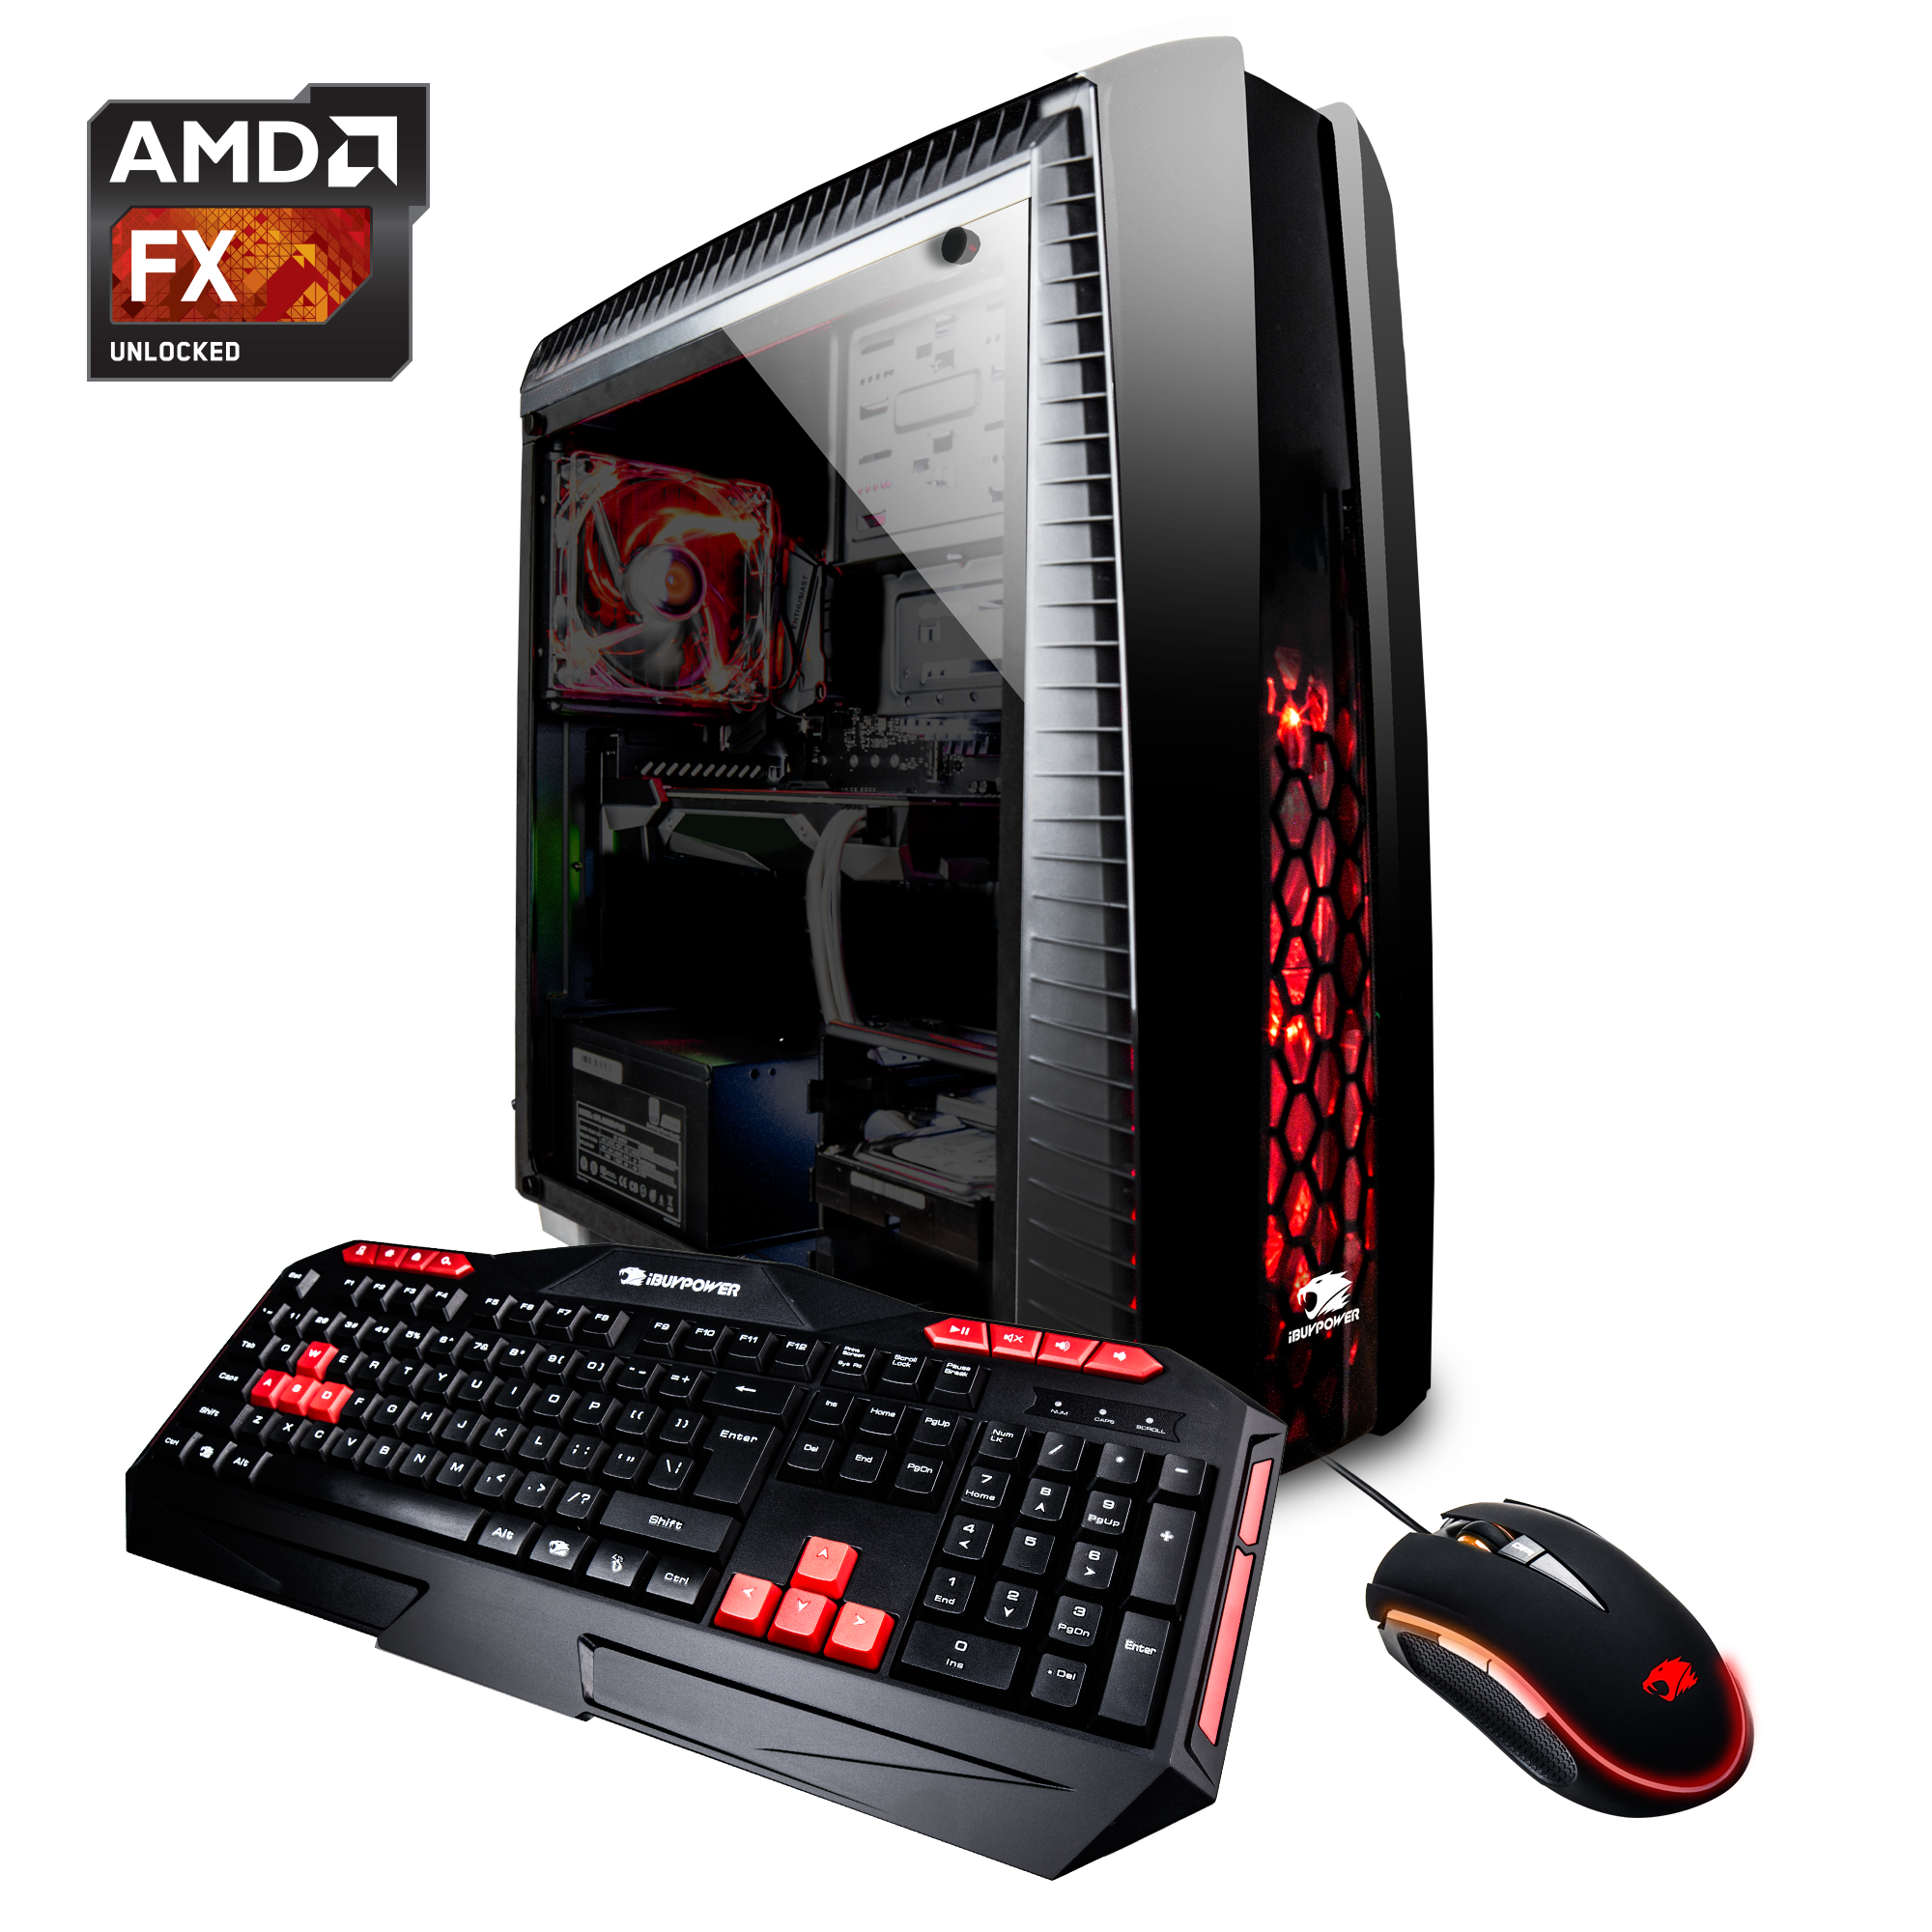 iBUYPOWER N27B7033GRXV2 - Gaming Desktop PC - AMD FX 8320 - 8GB DDR3 Memory - NVIDIA GeForce GTX 1050Ti 4GB - 1TB Hard Drive - 120GB SSD - N27B7033GRXV2